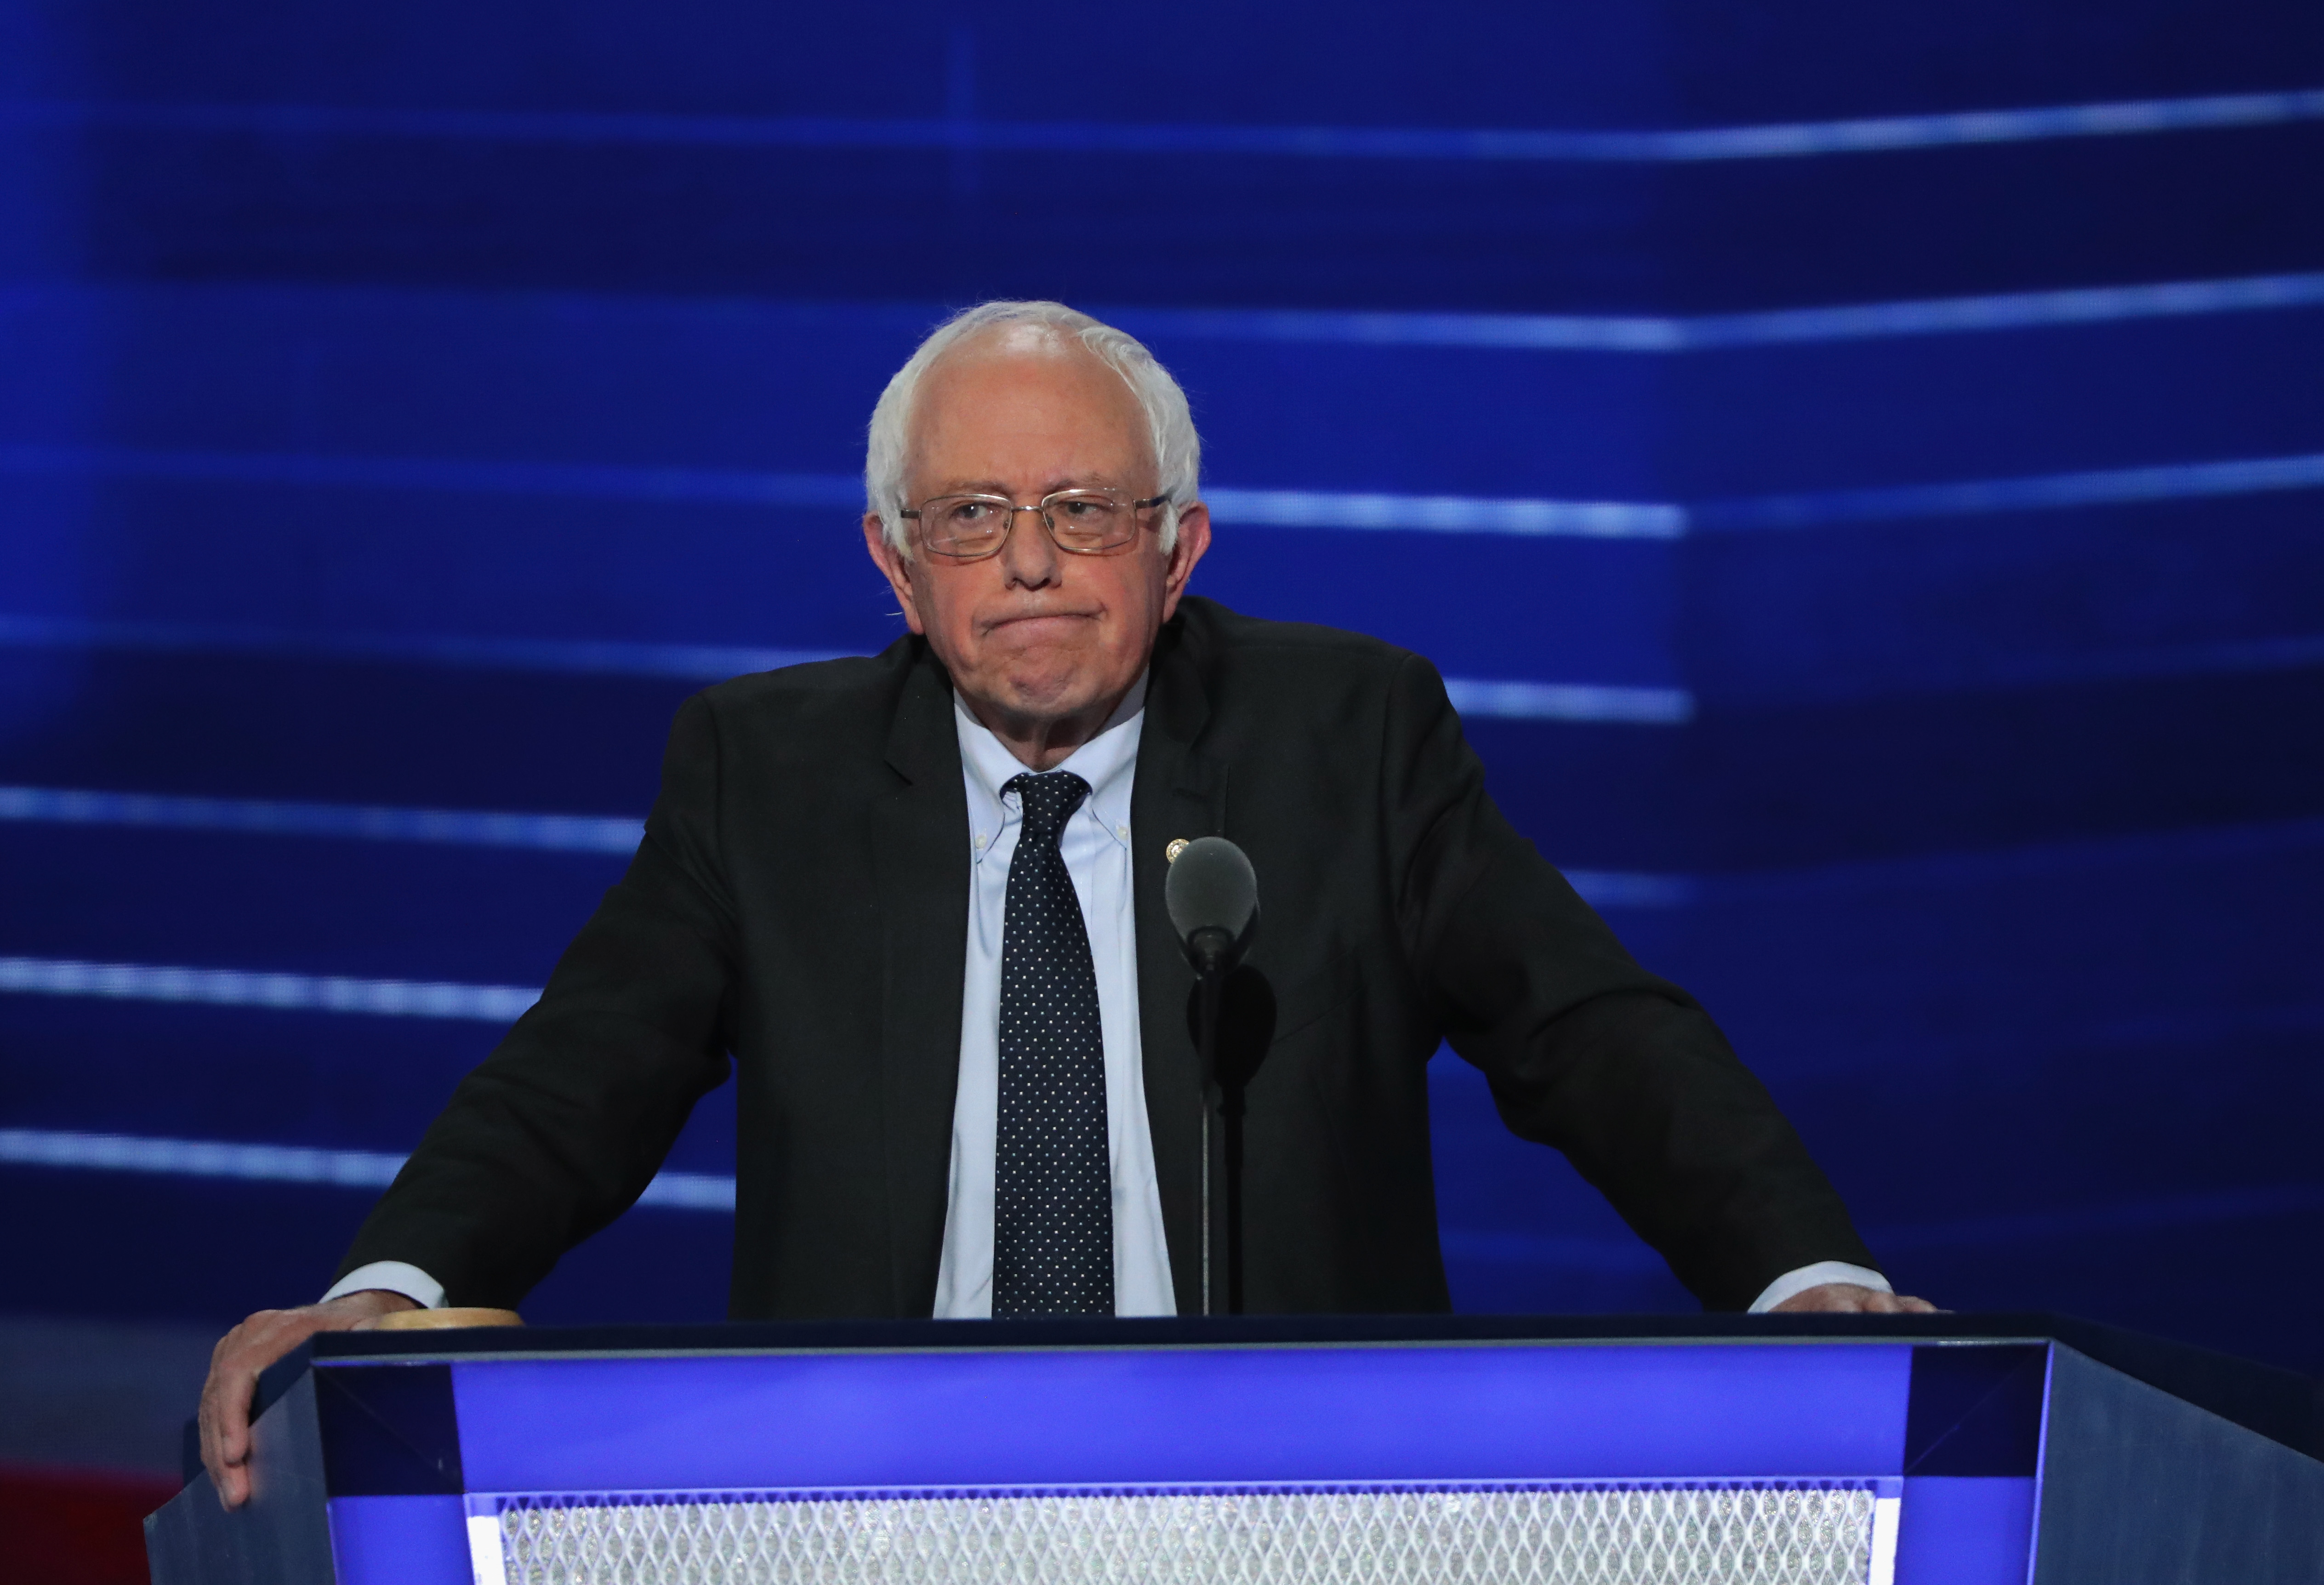 Bernie Sanders at the Democratic convention.